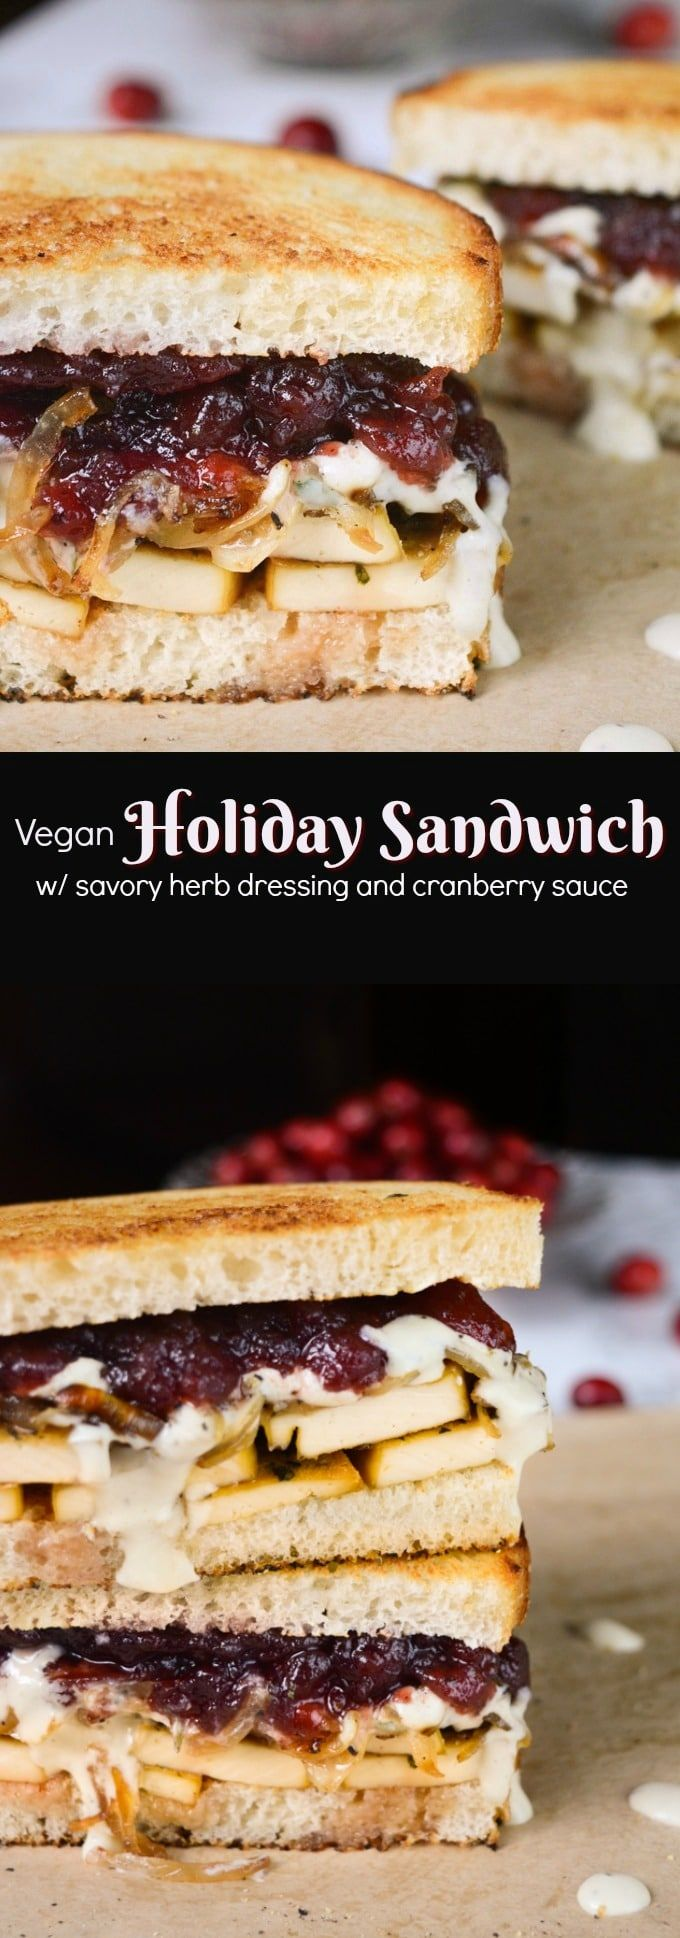 This isn't your average vegan sandwich. It's a flavor packed vegan holiday sandwich brought together by an herb and cranberry taste reminiscent of the holidays. The taste is so classic you would never know this sandwich was vegan! #vegansandwich #holidayrecipe #vegan